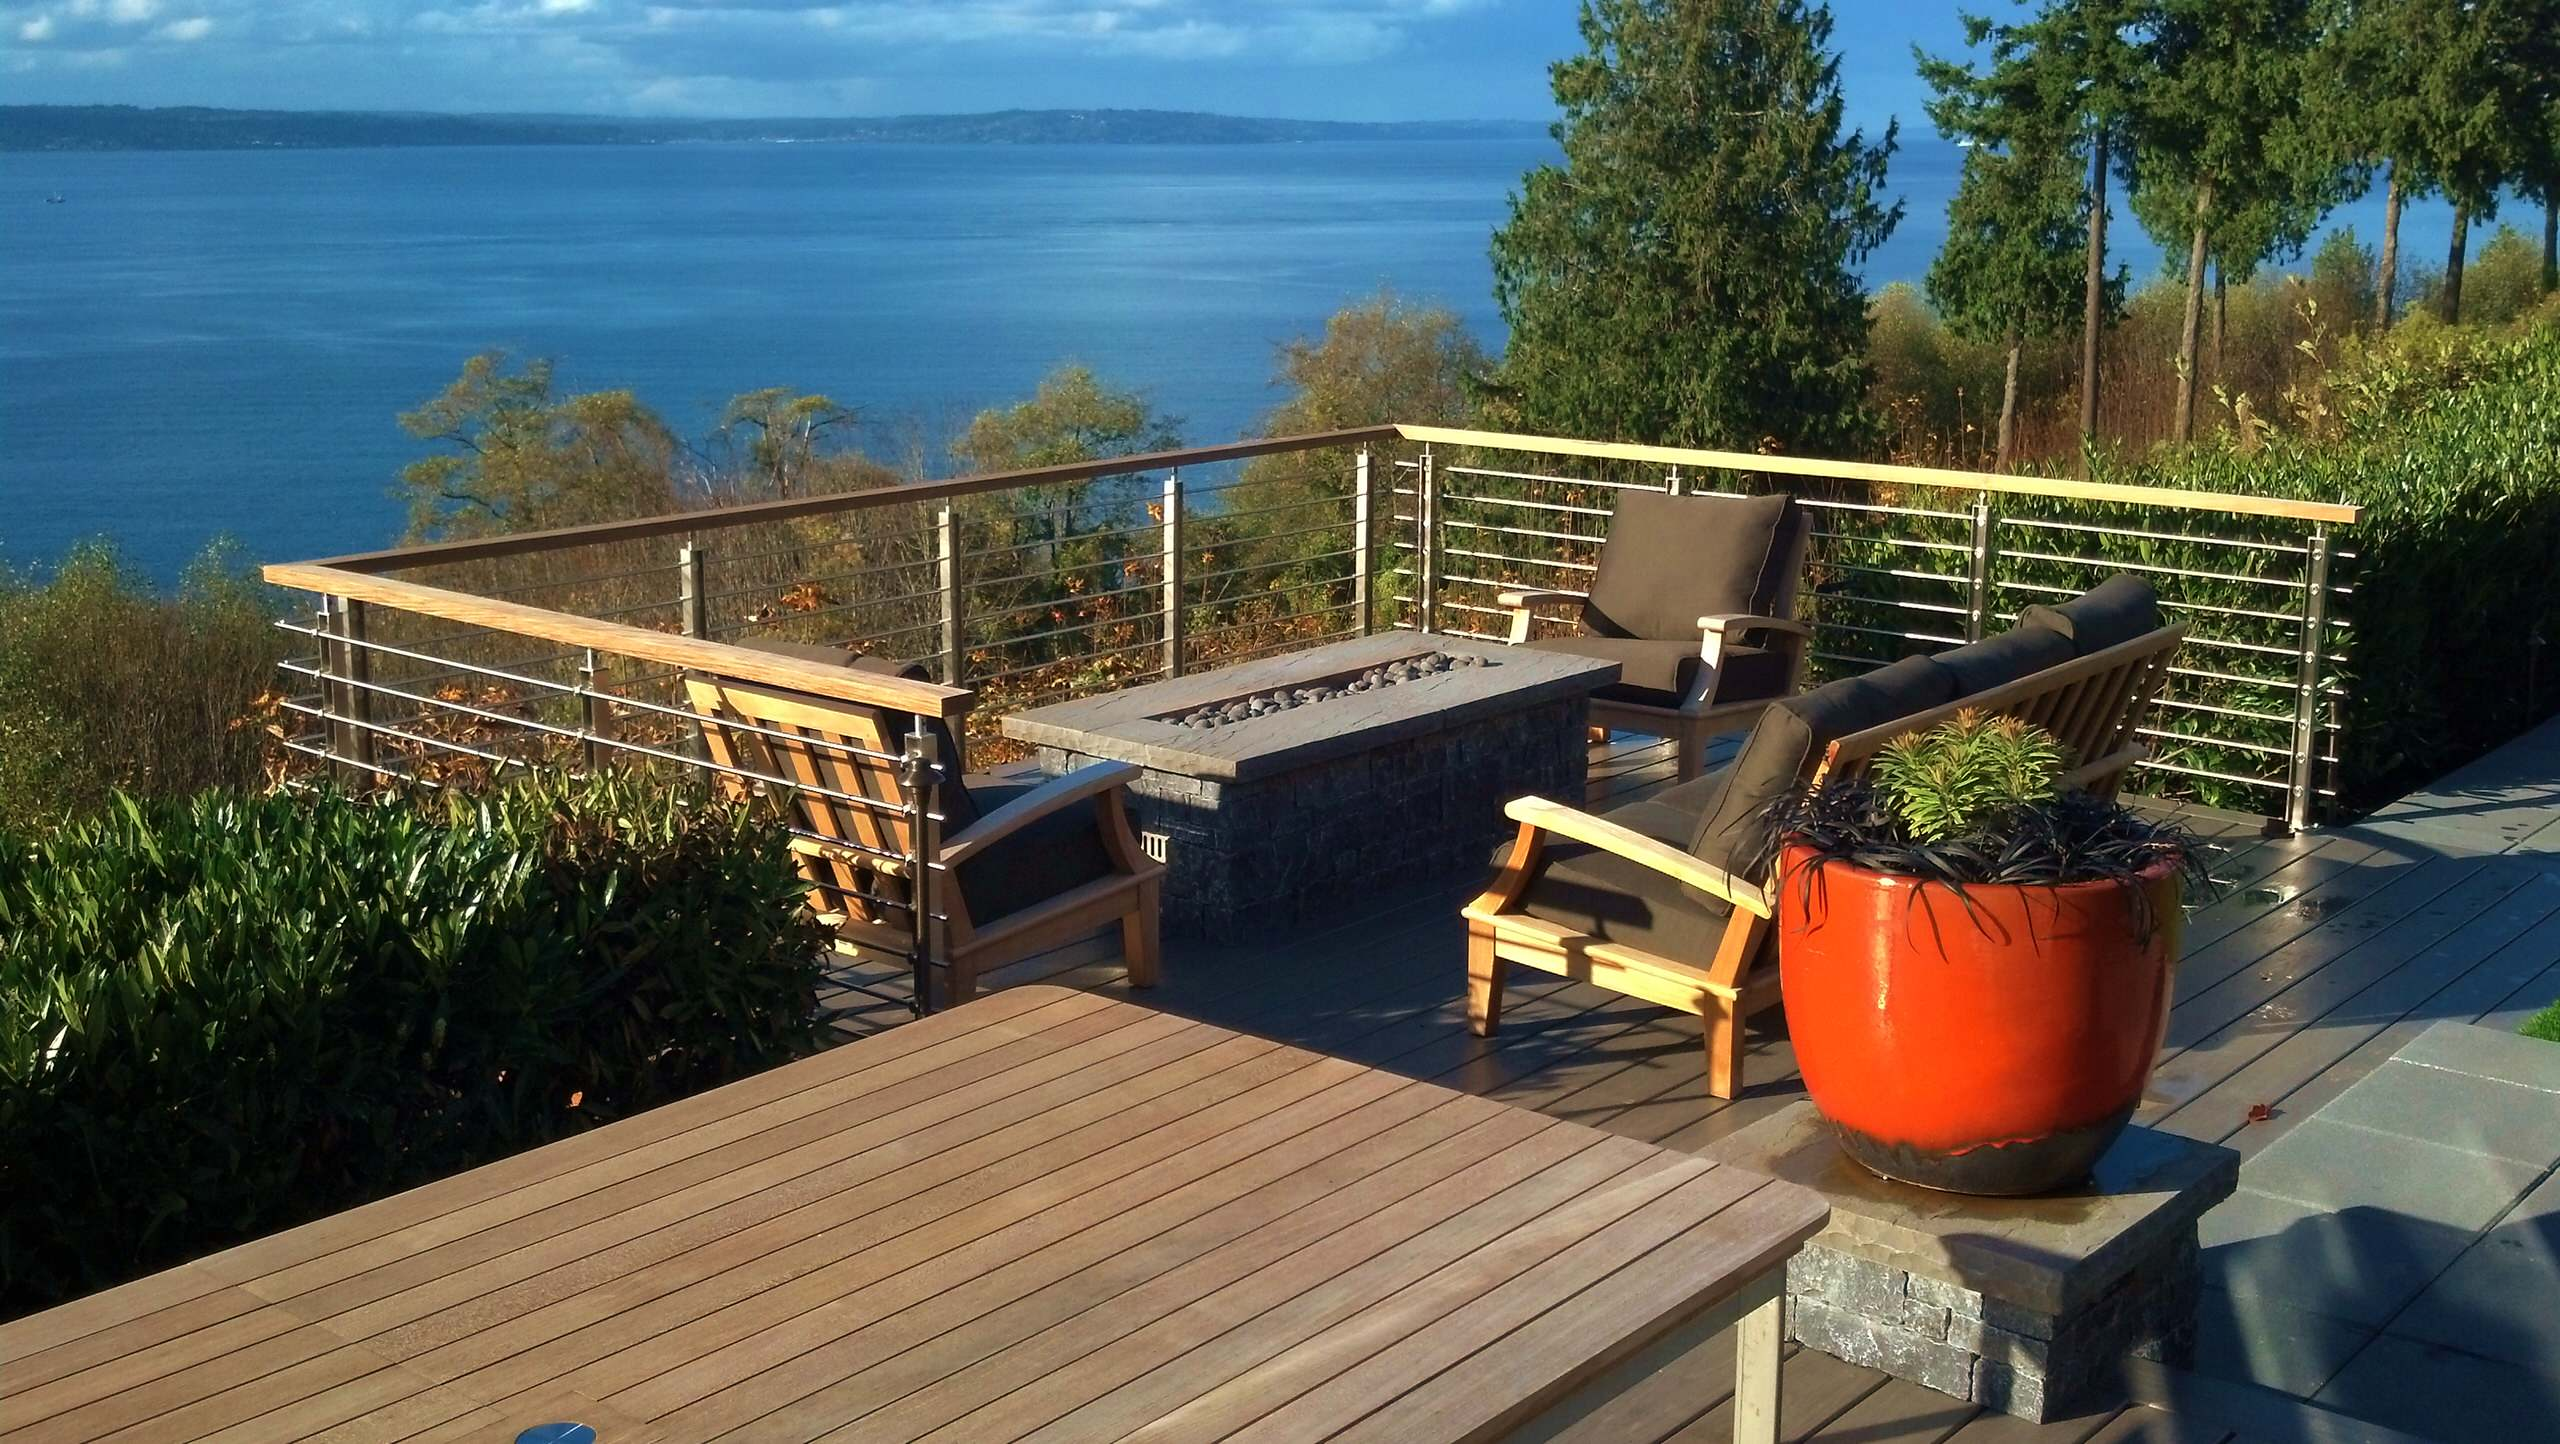 Clifftop View Deck